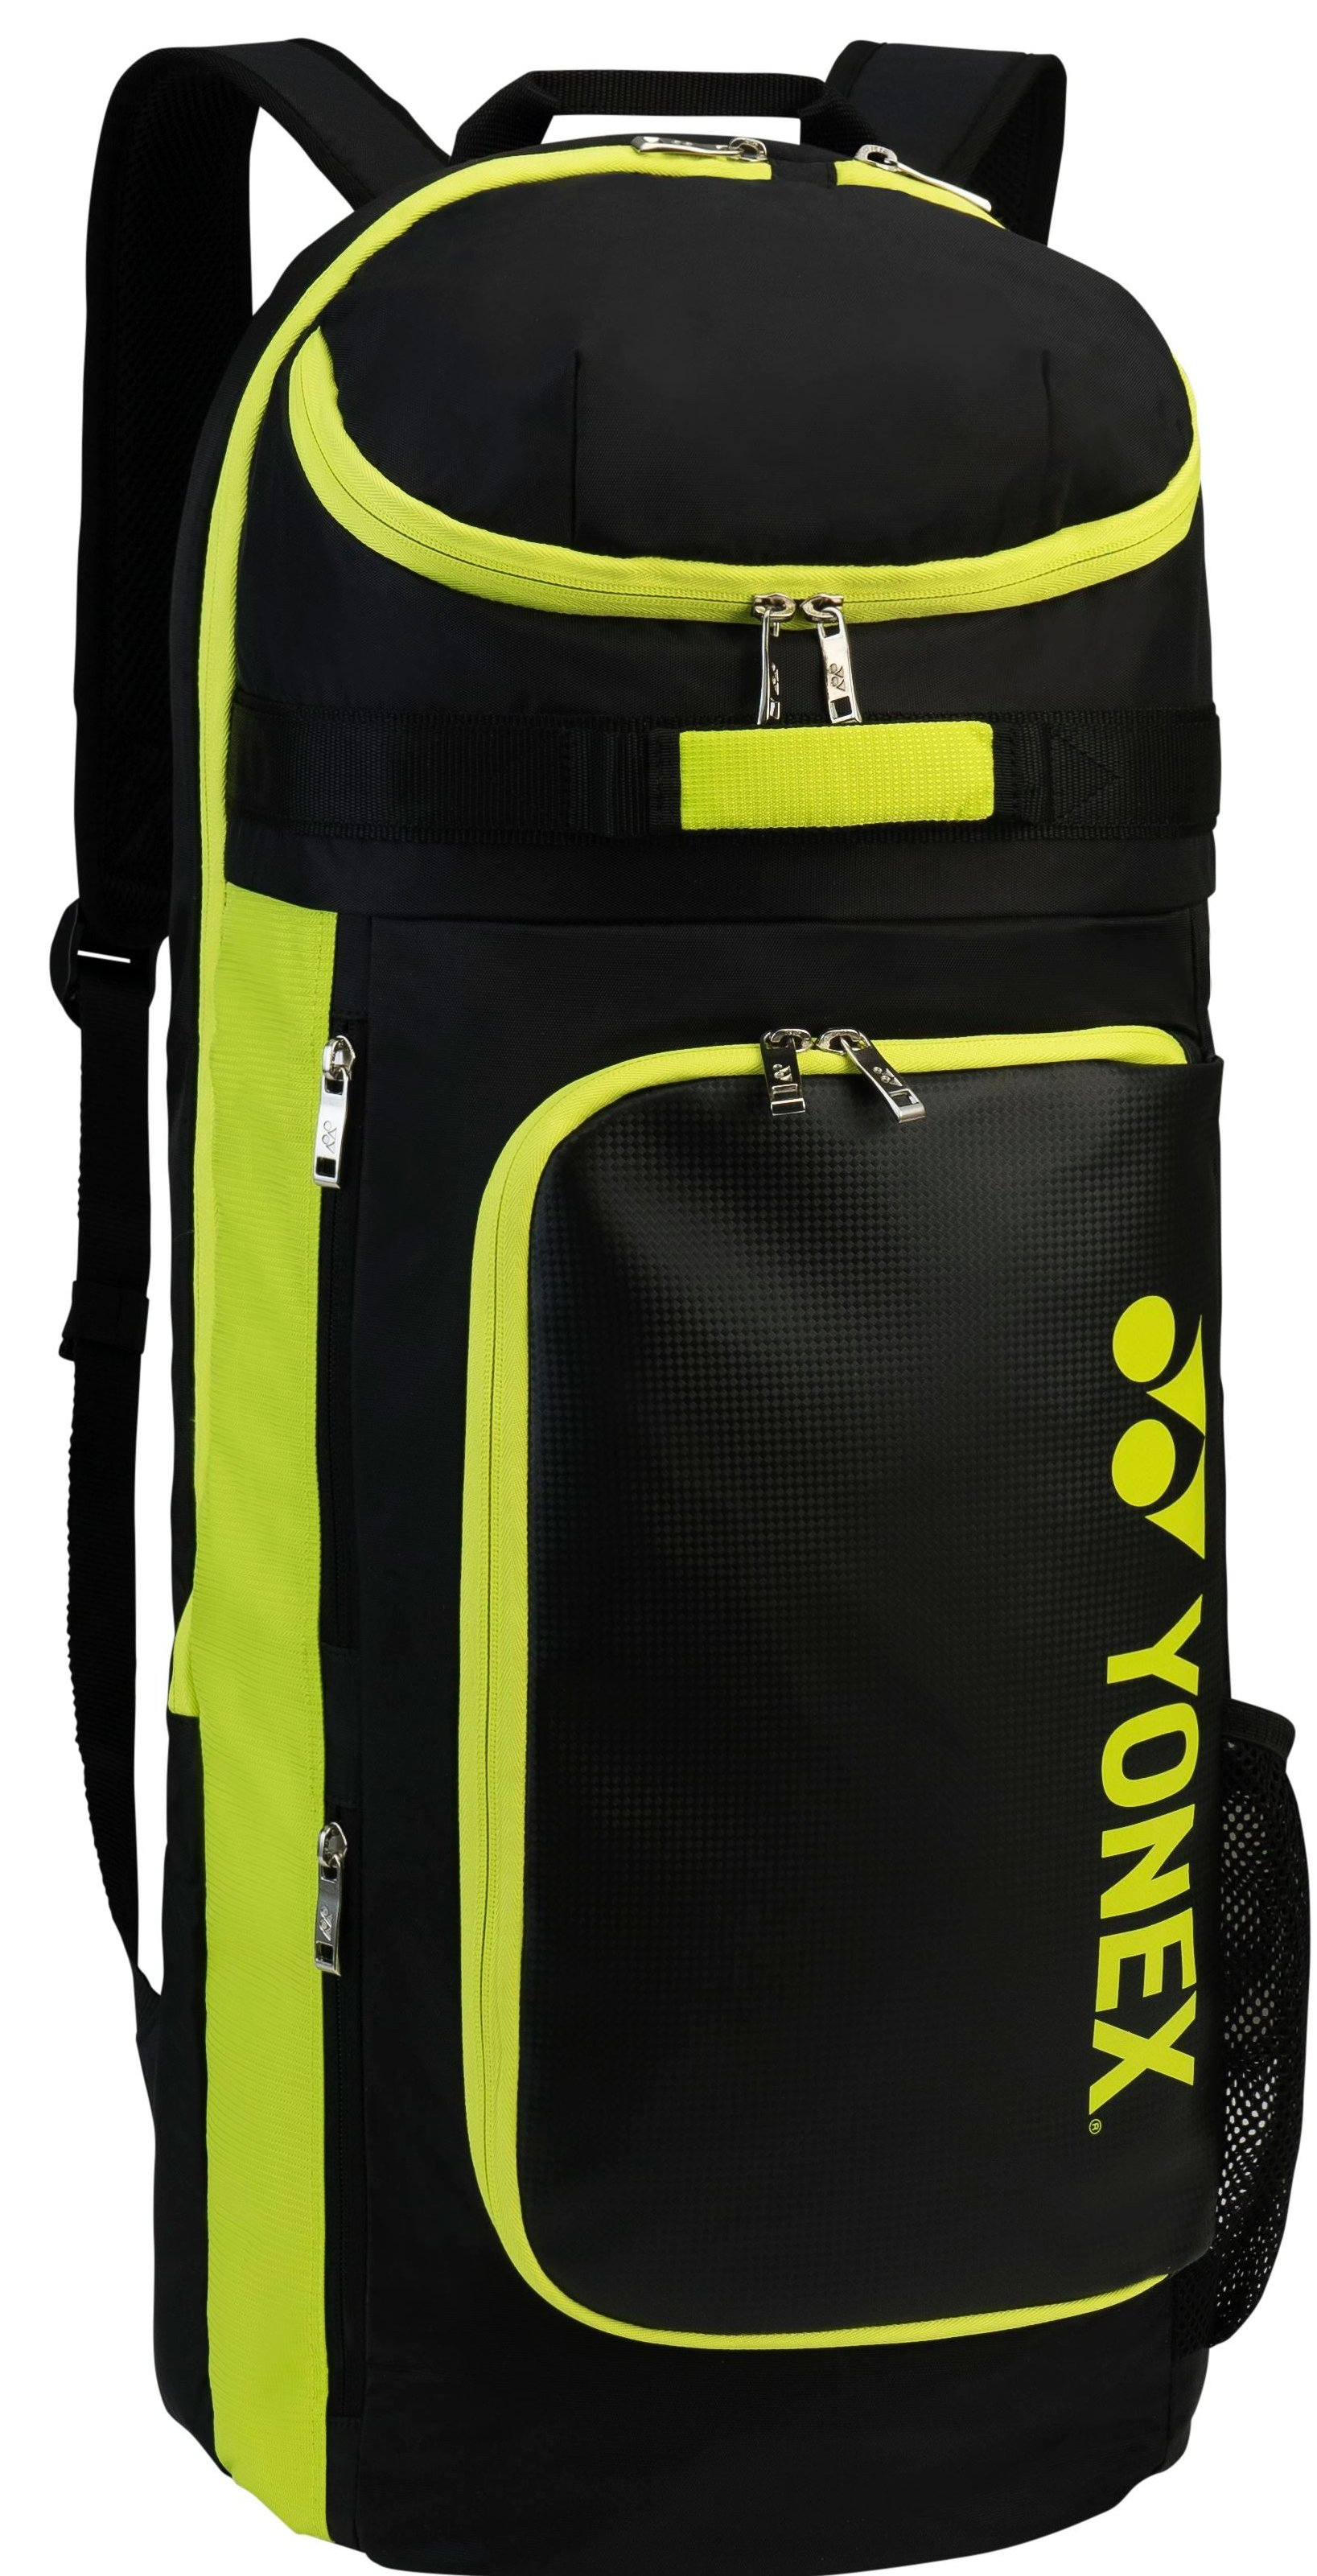 Want to buy Yonex Active Backpack 8722EX?